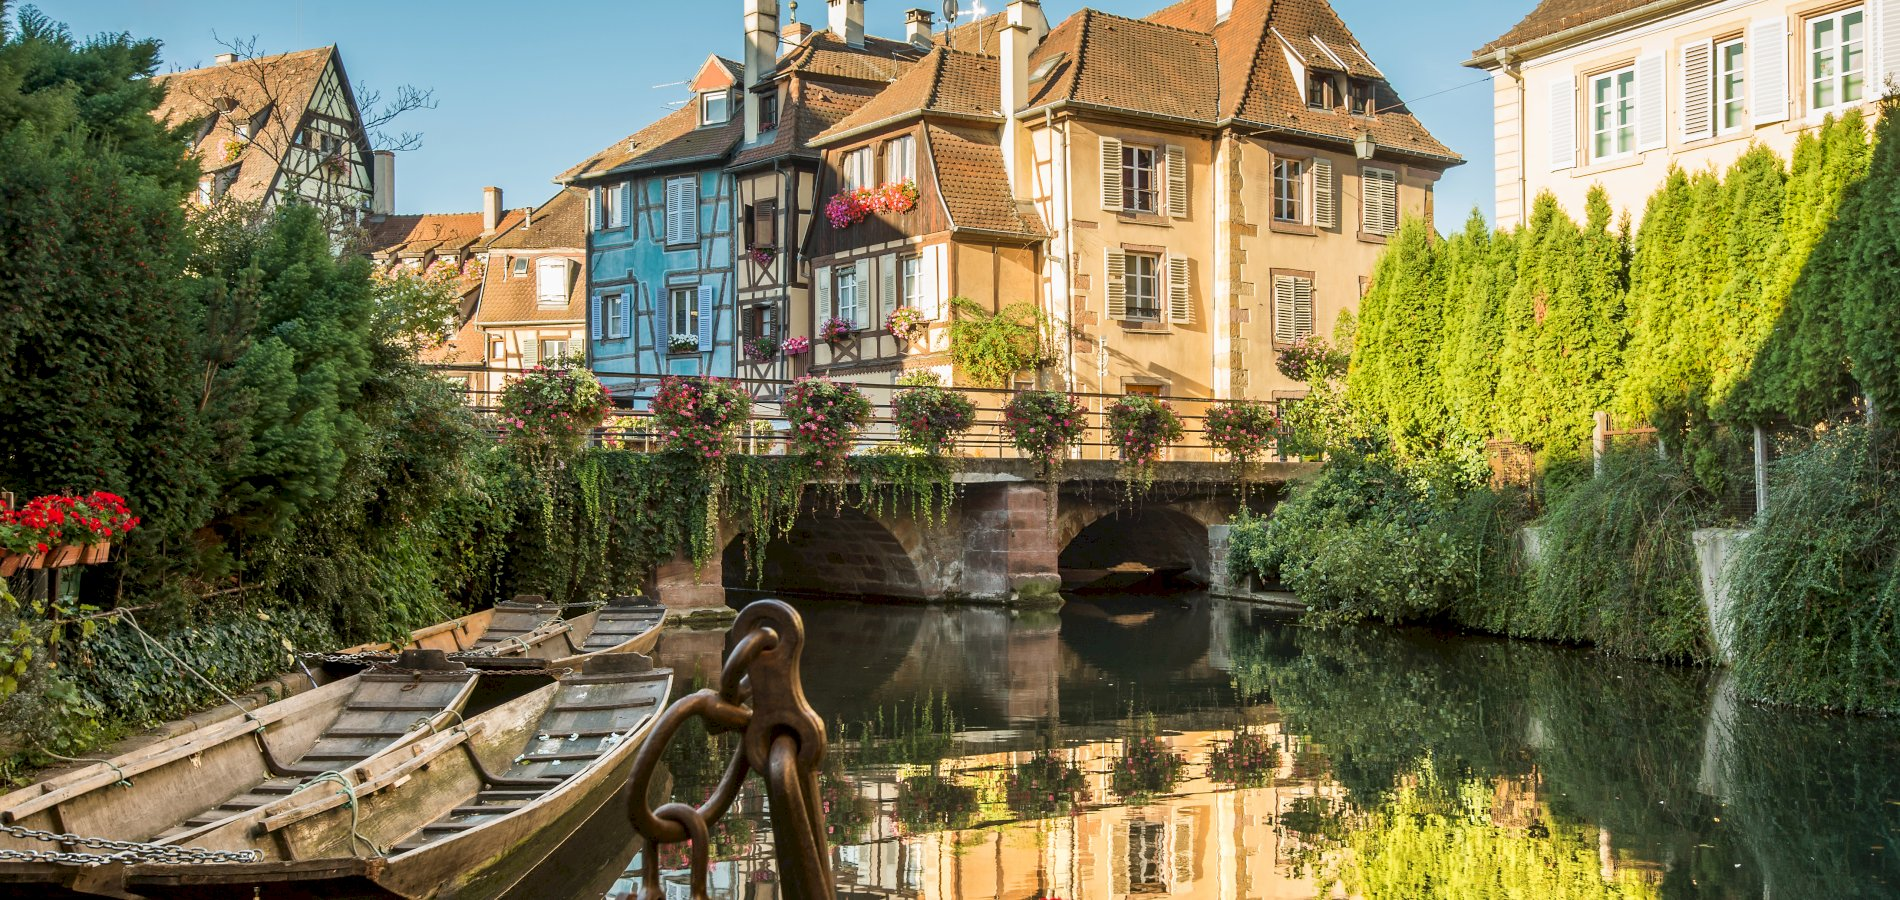 Ophorus Tours - Colmar Small Group Private Guided Walking Tour with a Licensed Tour Guide